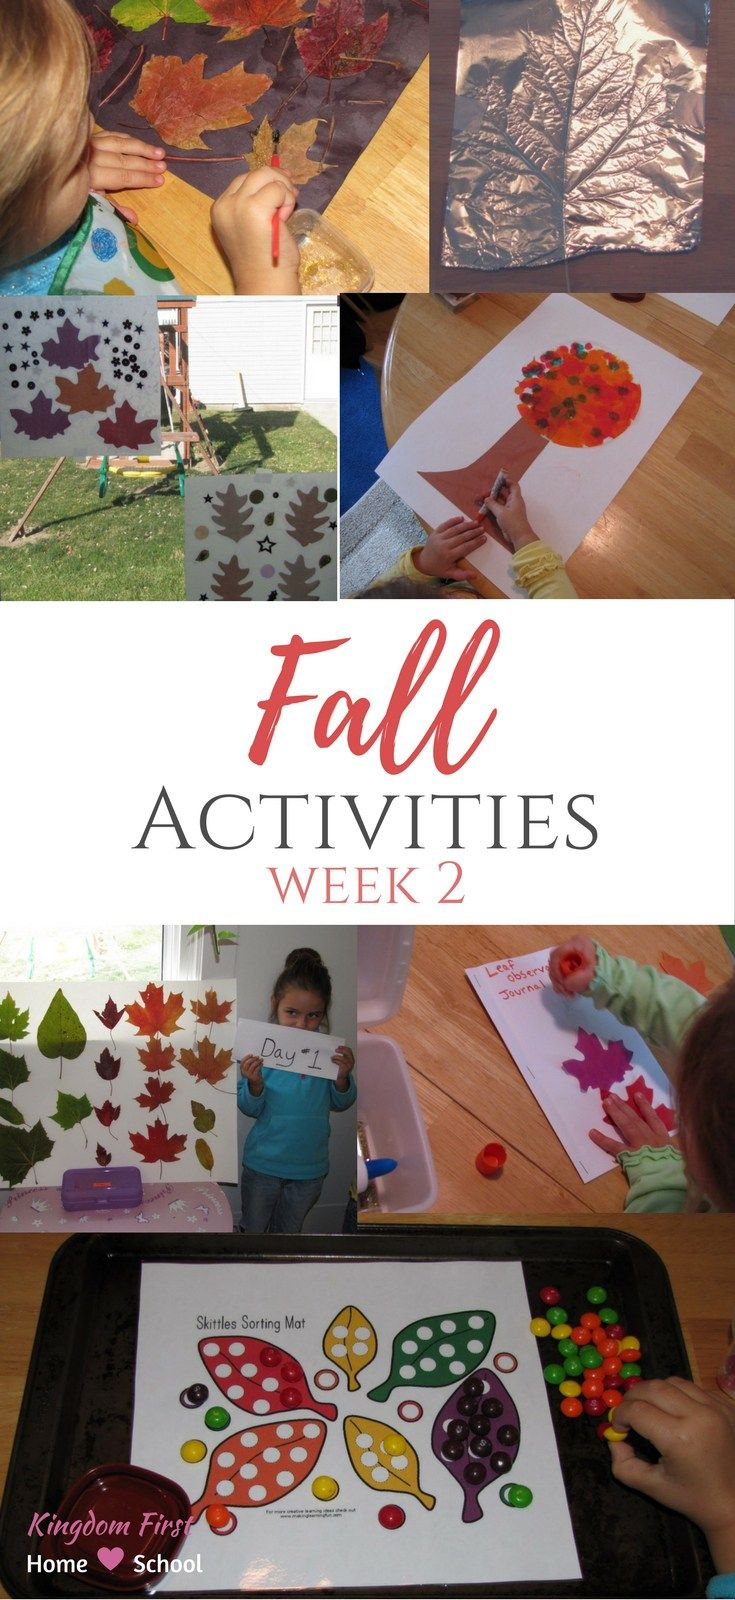 Looking for some super fun fall activities to do with your kids? Great I gotcha covered. Fall leaves, autumn colors oh and skittles!